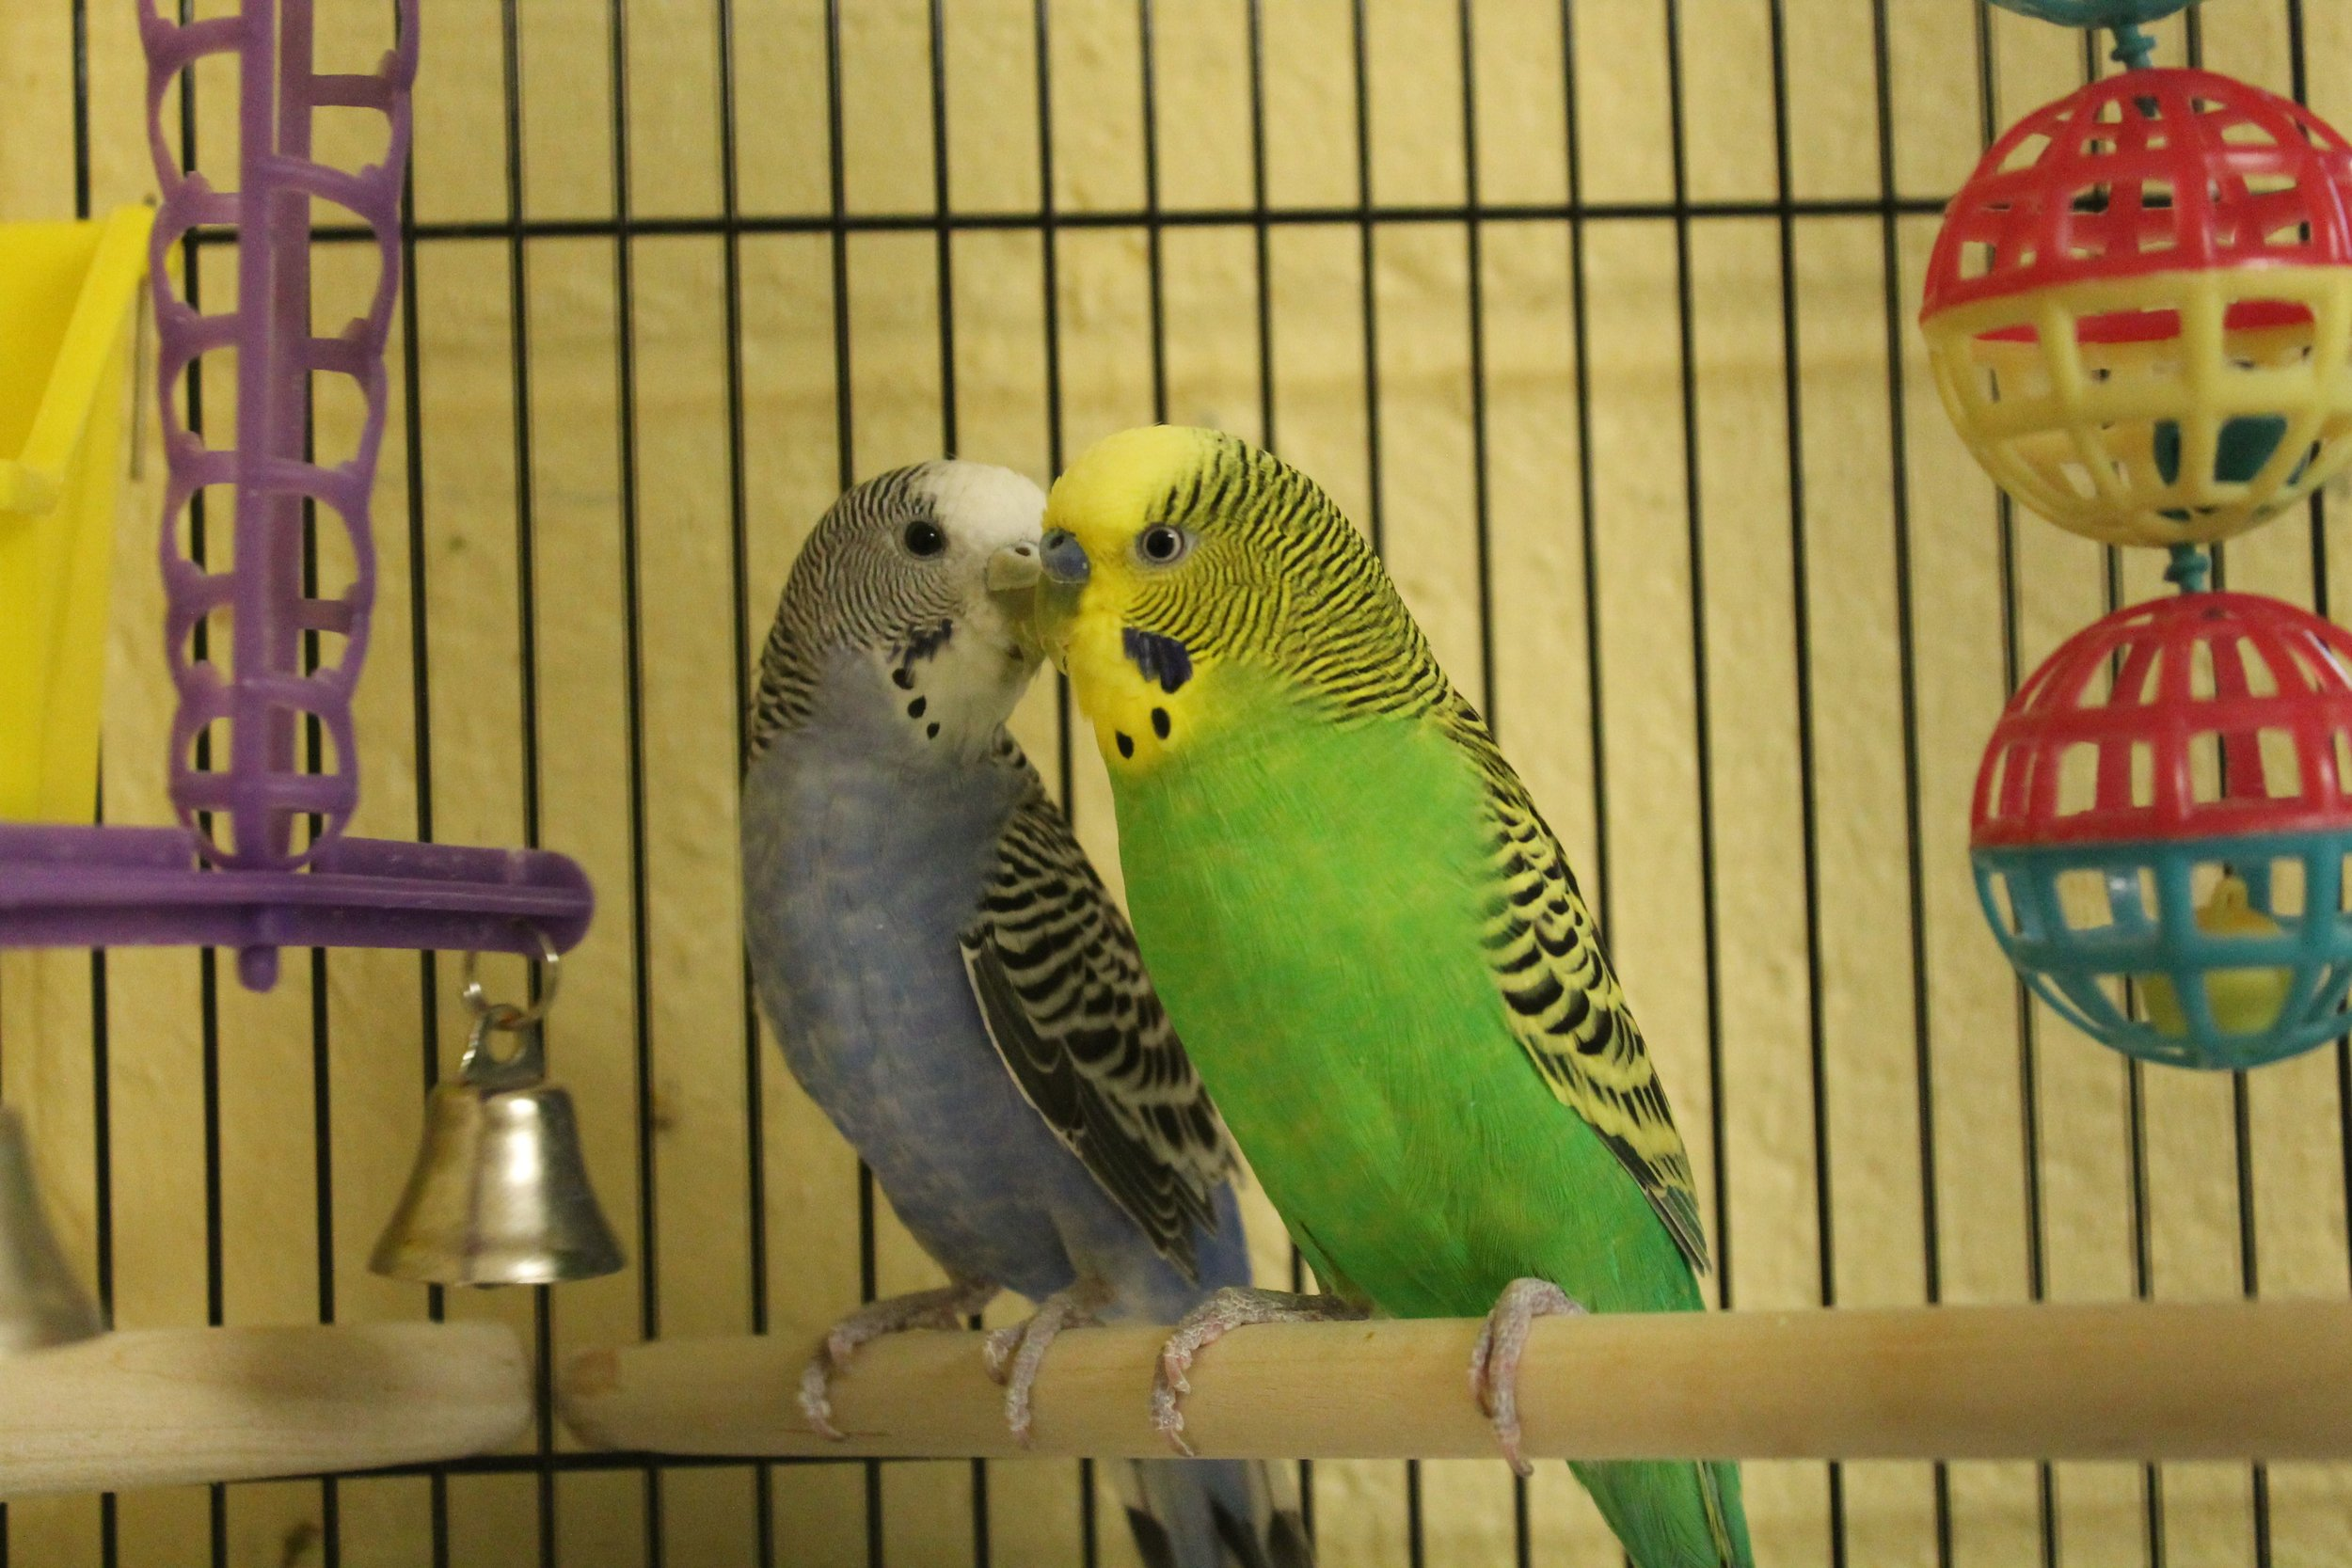 Anna and Kristof are a great pair. They love each other very much and are looking for their own family to love. They have fun when they chit chat to each other and snuggle close together. Come see them soon--they will bring much happiness into your home!